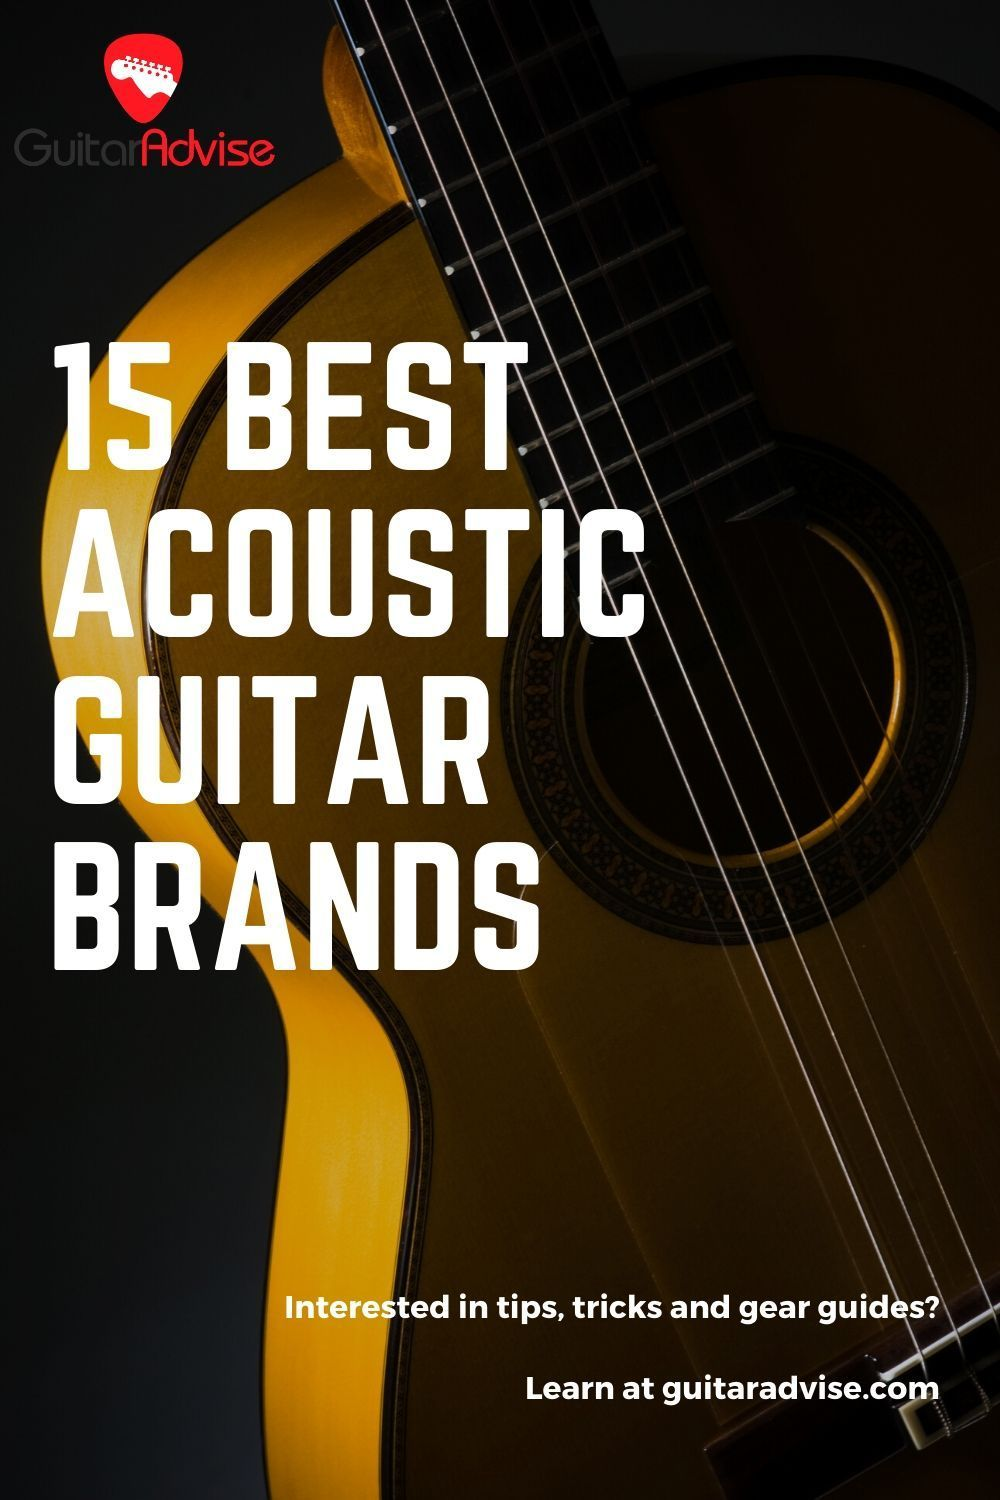 15 Best Acoustic Guitar Brands Best Acoustic Guitar Guitar Lessons Fingerpicking Acoustic Guitar